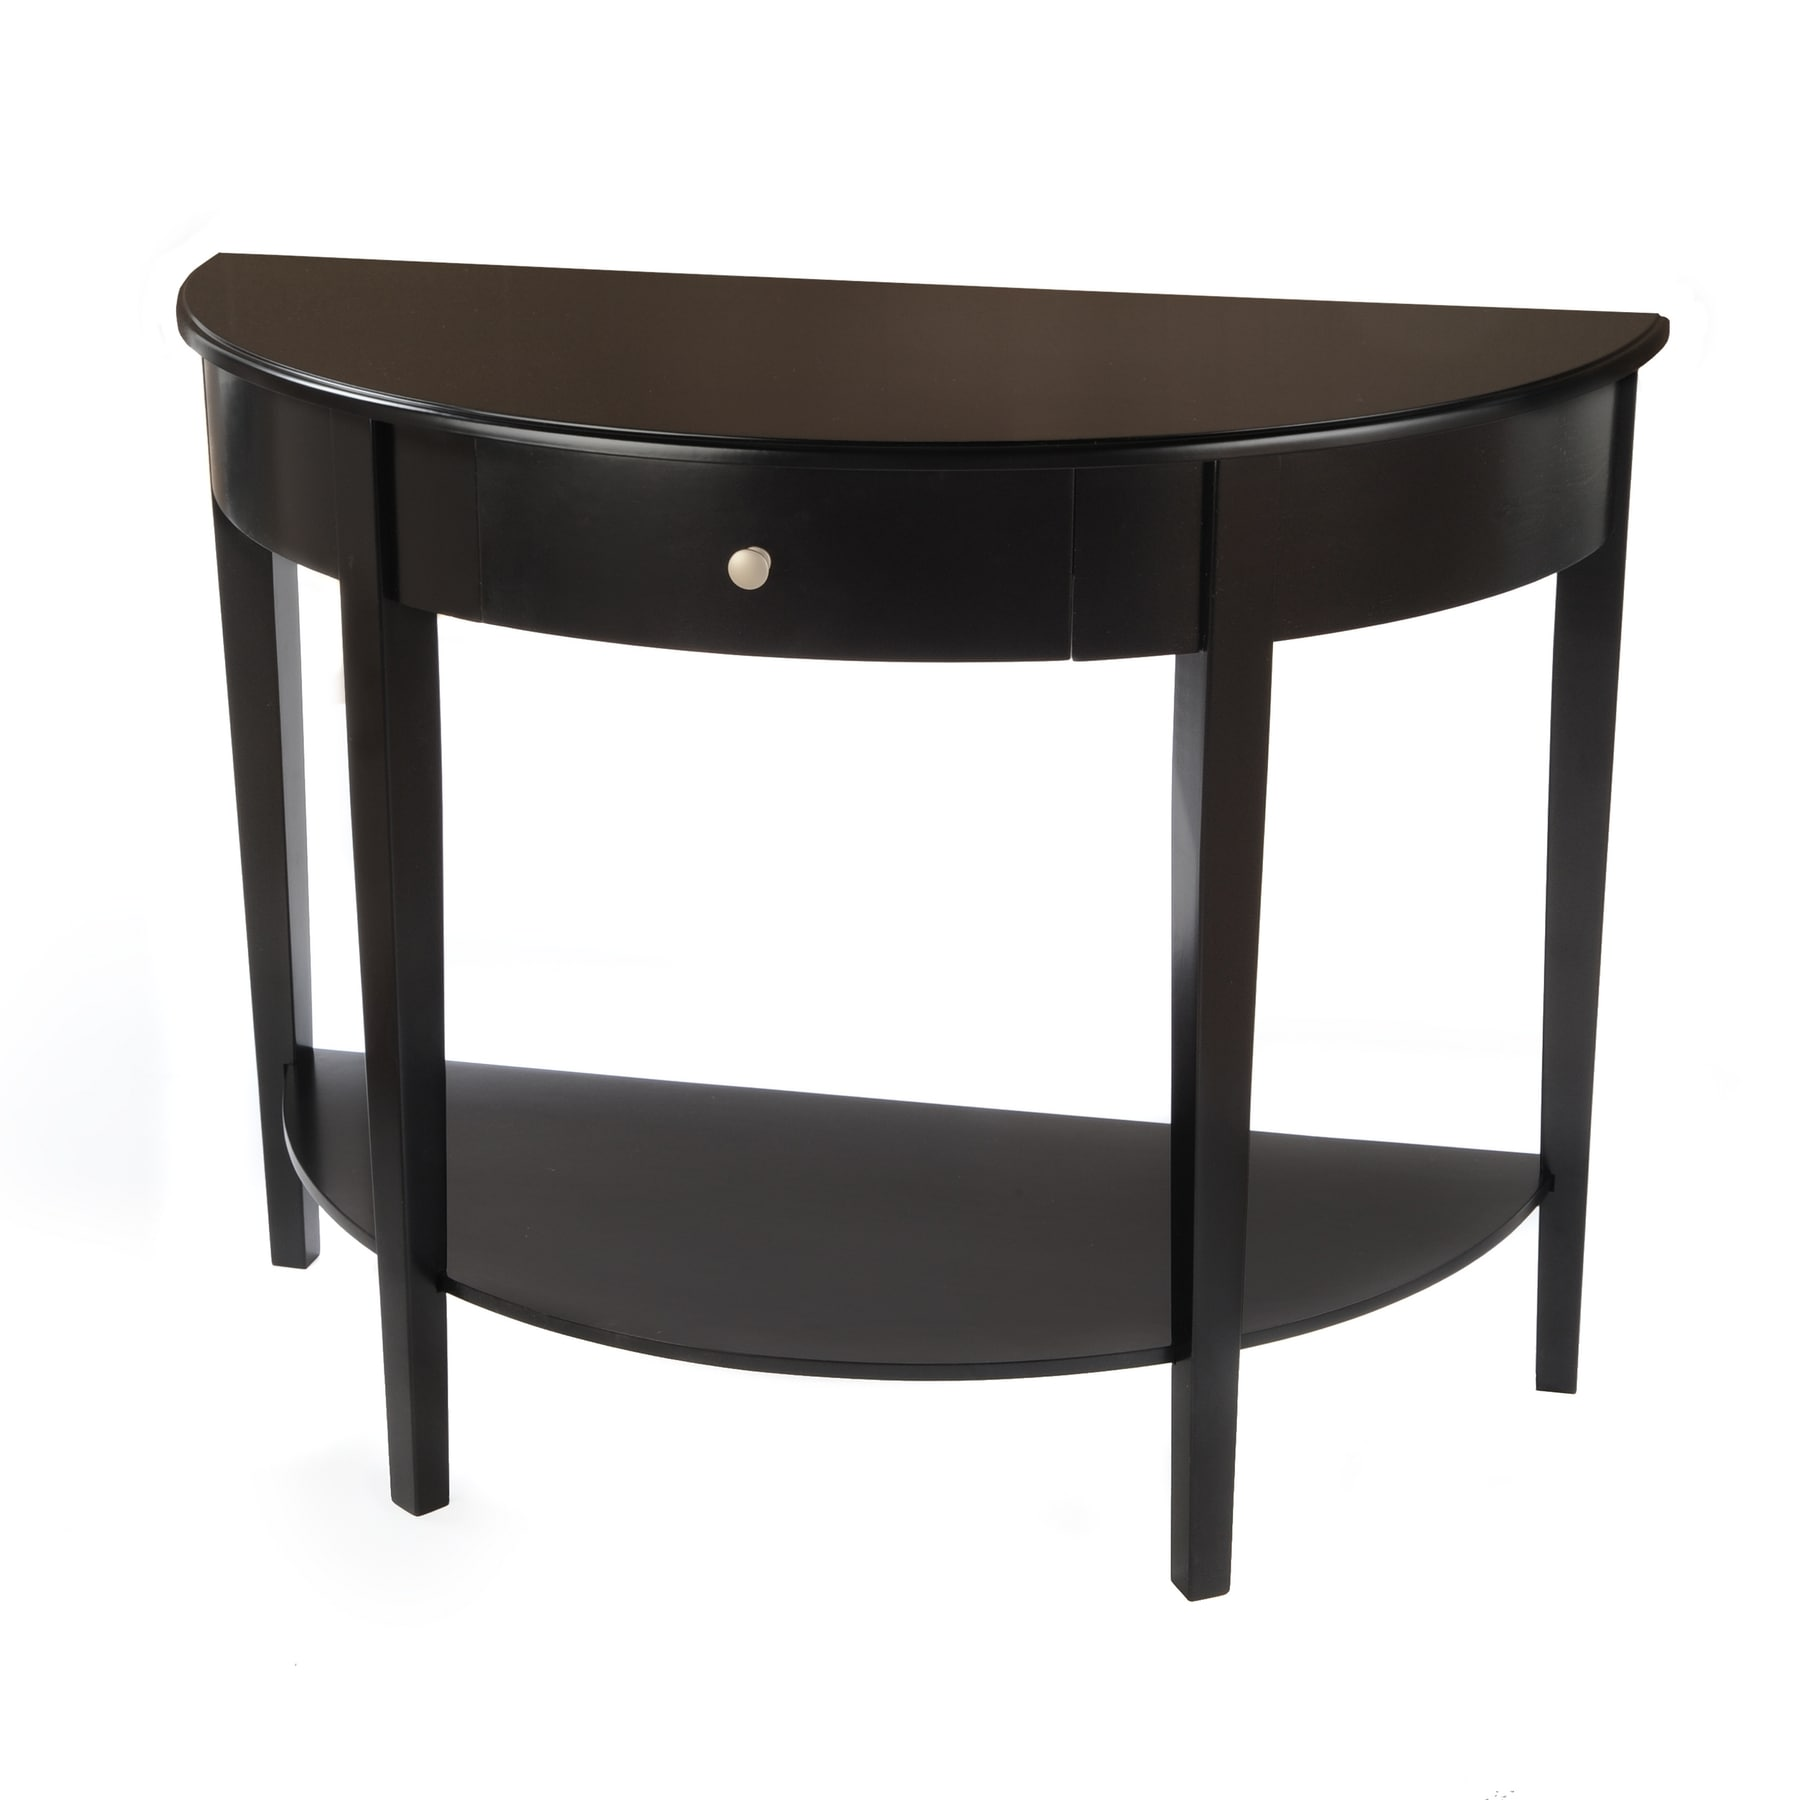 Half-round Sofa Table - 11143150 - Overstock.com Shopping